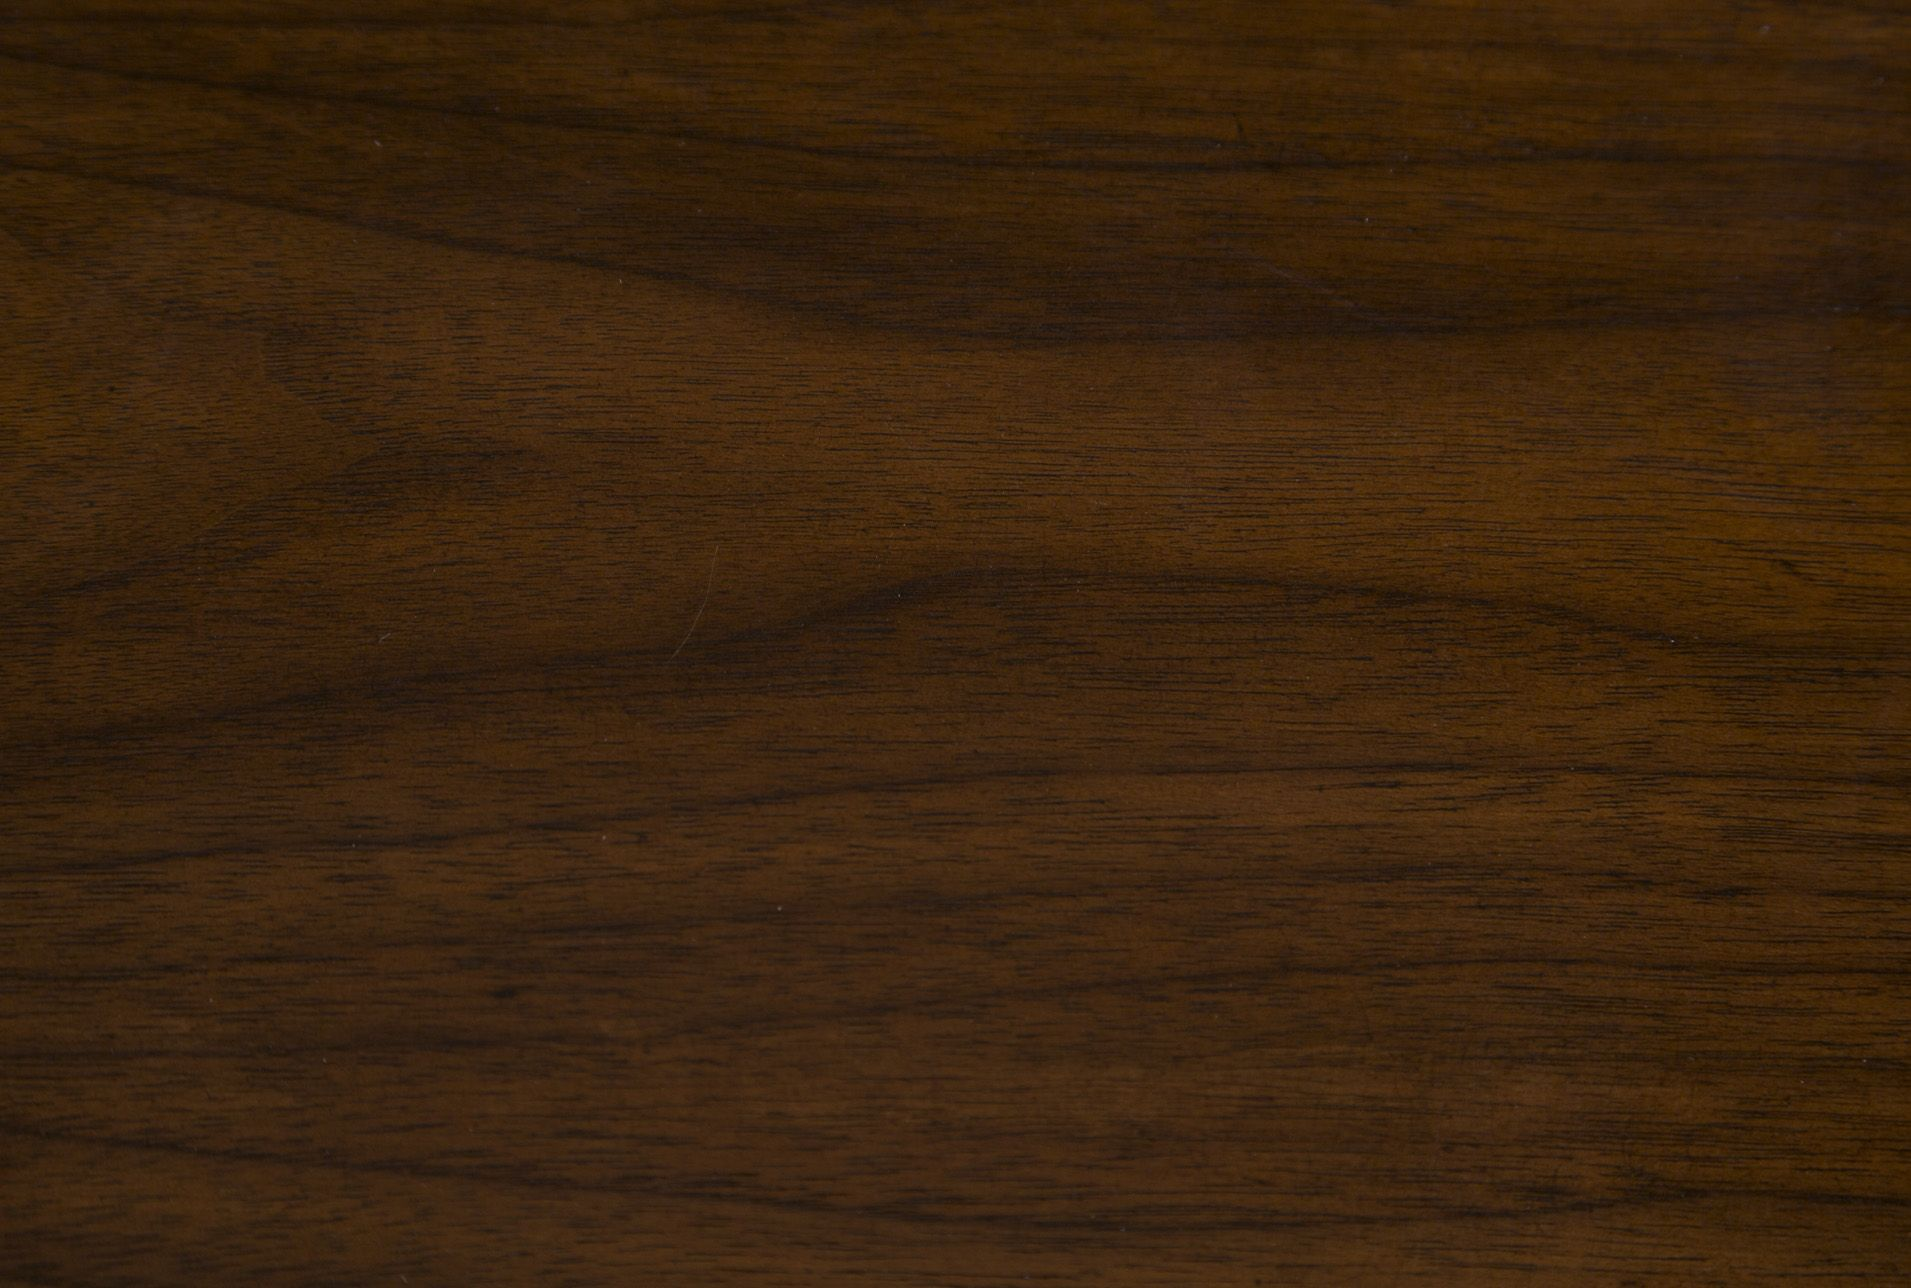 Adams Walnut Desk Products In 2019 Dark Wood Texture